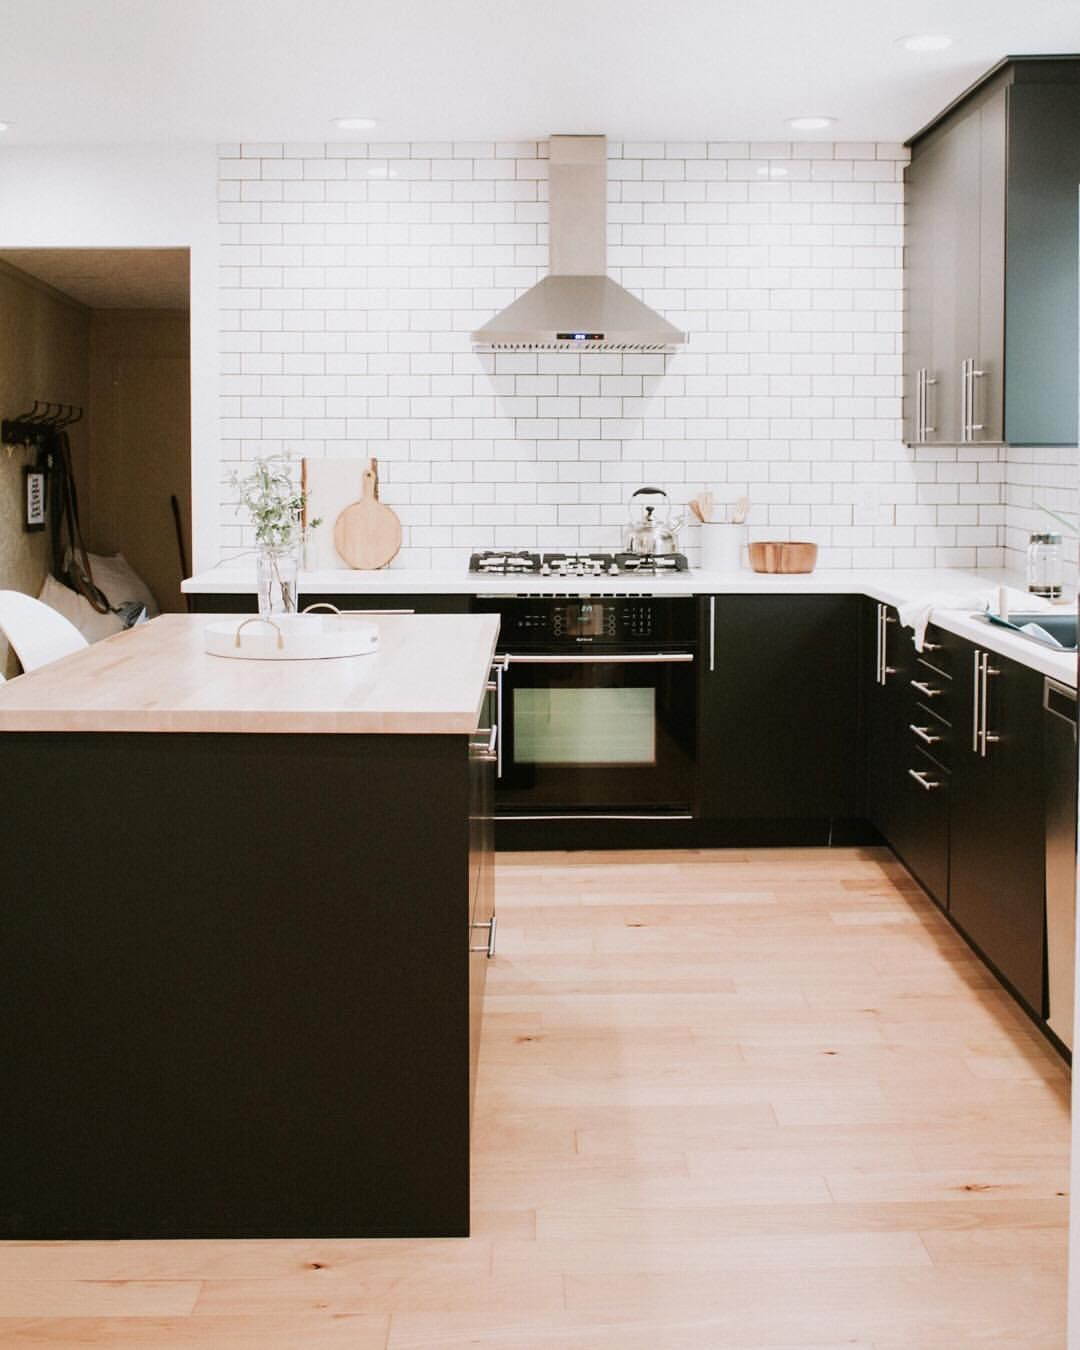 Modern Black And White Kitchen Inspiration We Love Our Ikea Kungsbacka Kitchen Cabi White Kitchen Inspiration Kitchen Inspirations Kitchen Design Modern White